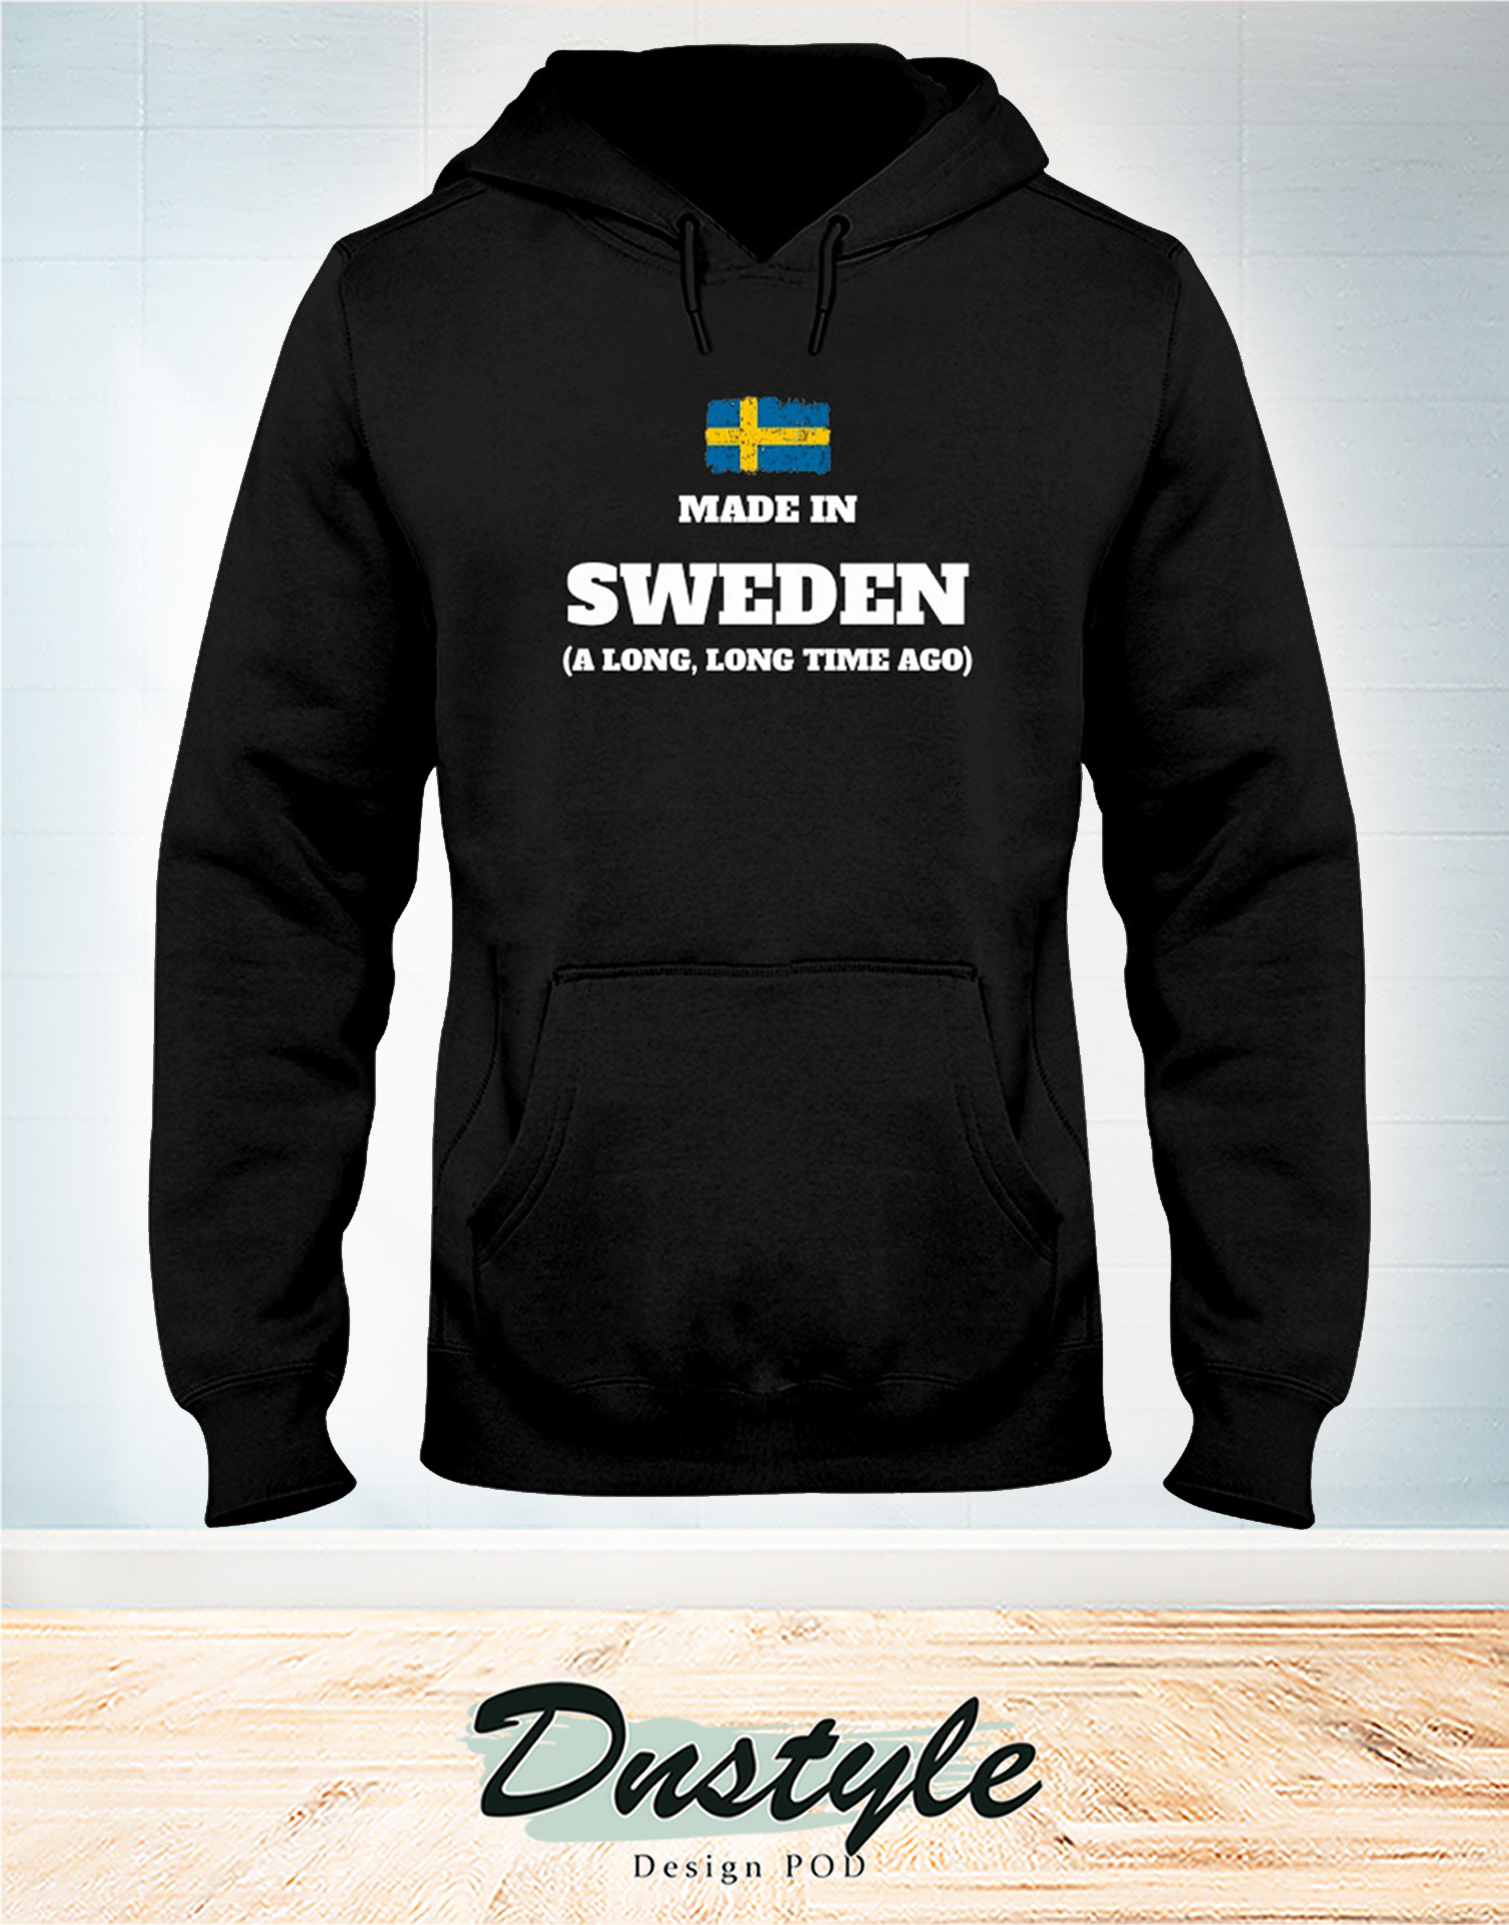 Made in sweaden a long long time ago hoodie